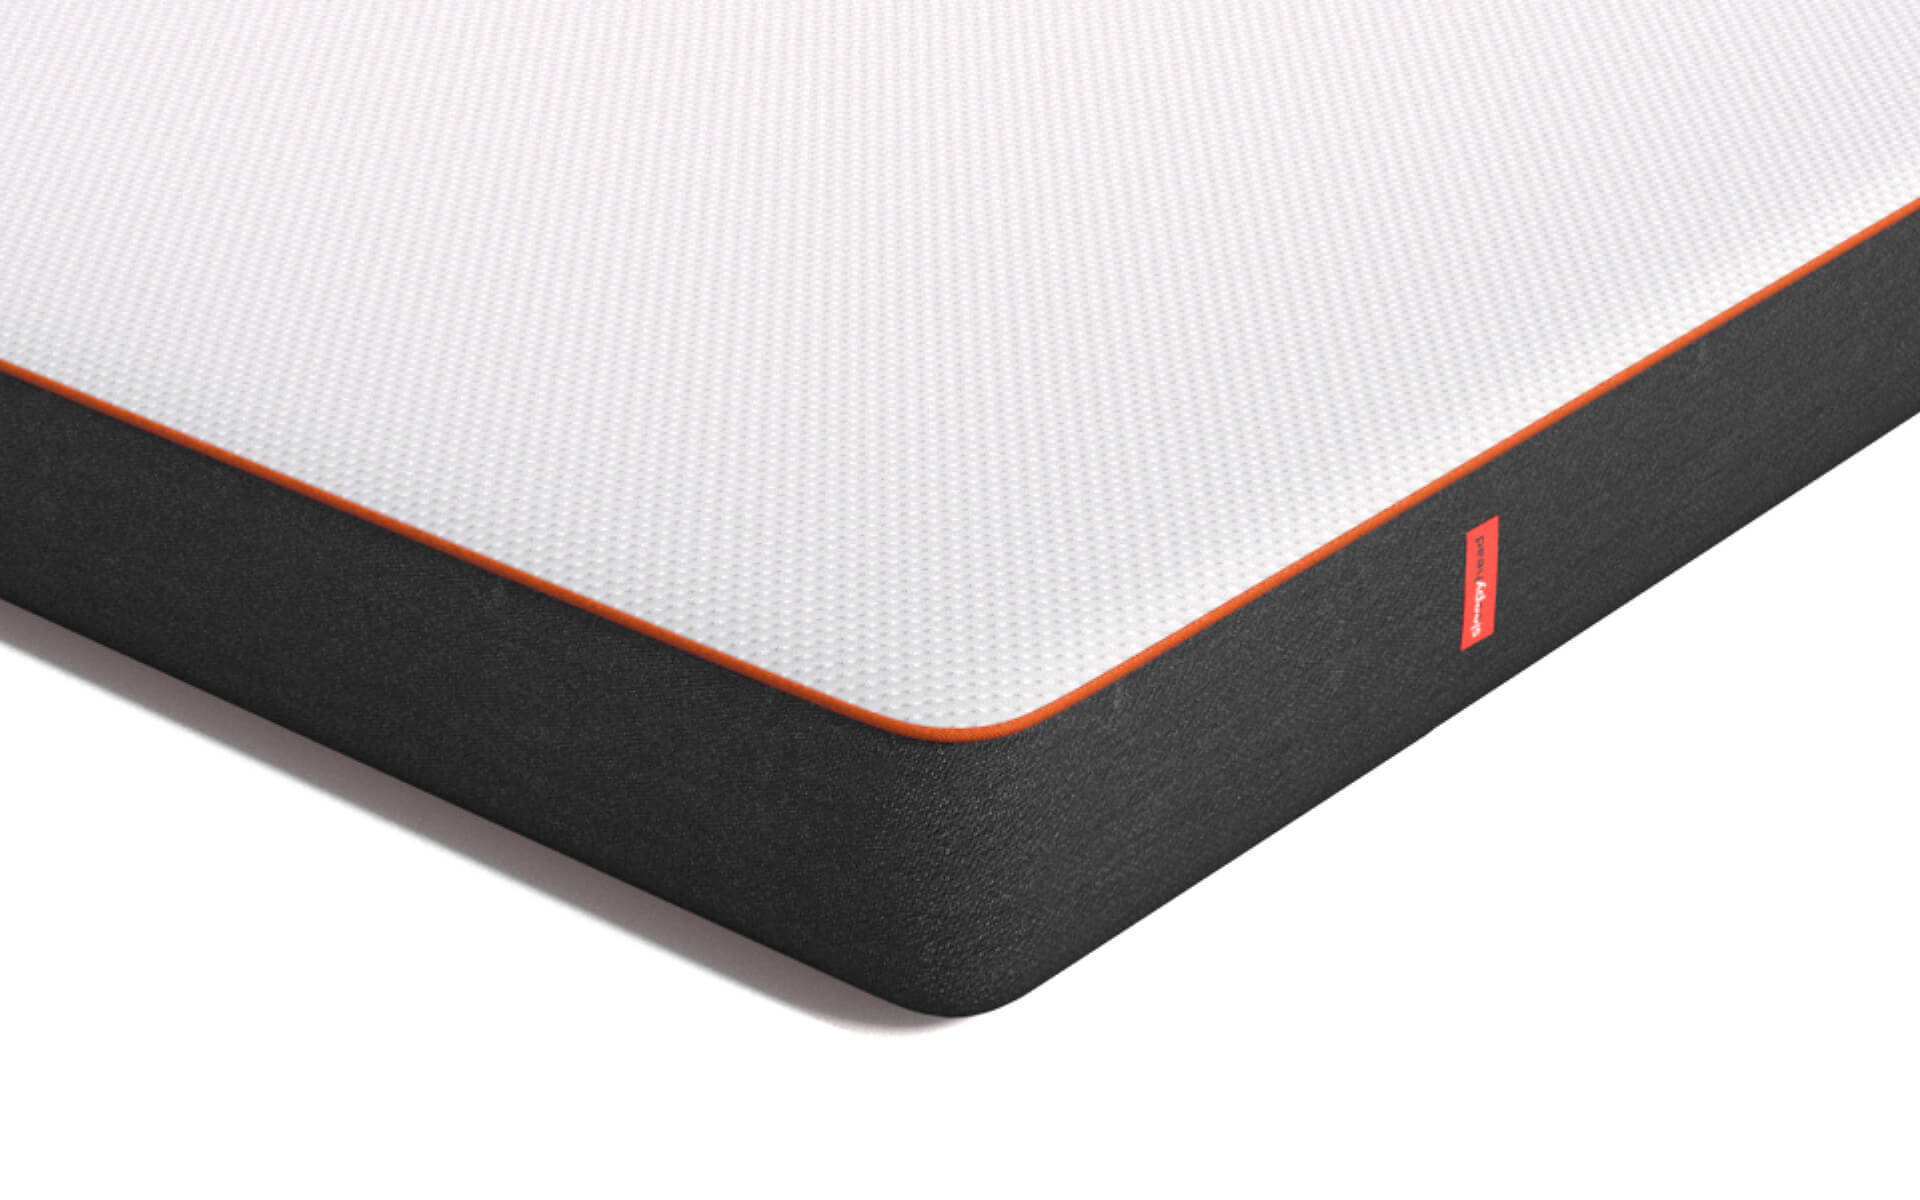 What You Should Know About Full Memory Foam Mattress